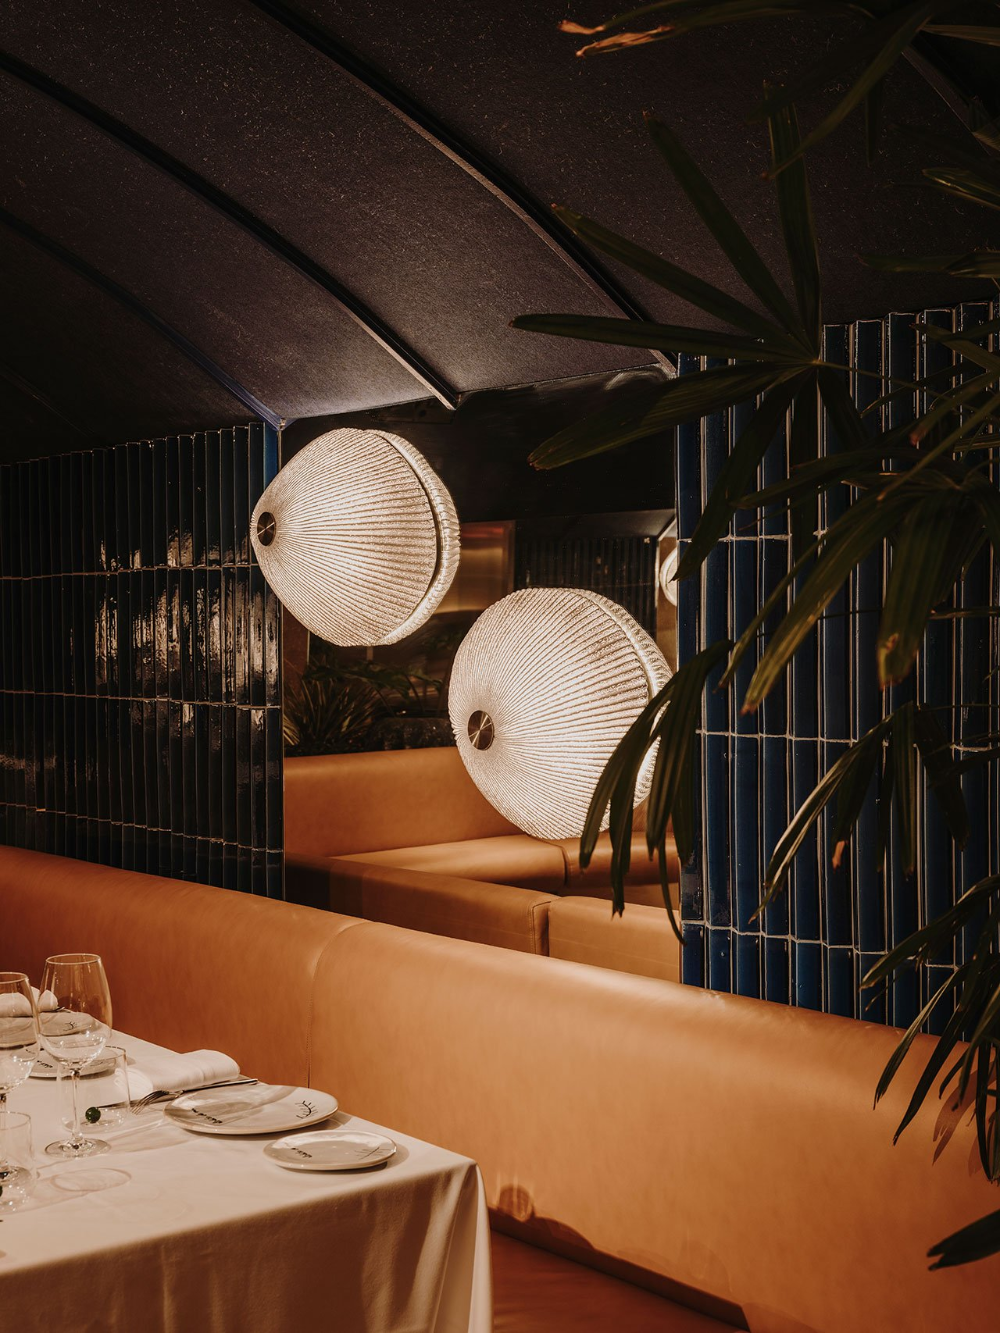 Lobito De Mar Restaurant In Madrid Channels The Malaga Coastline With Eclectic Finesse Yatzer In 2020 Restaurant Interior Hospital Interior Interior